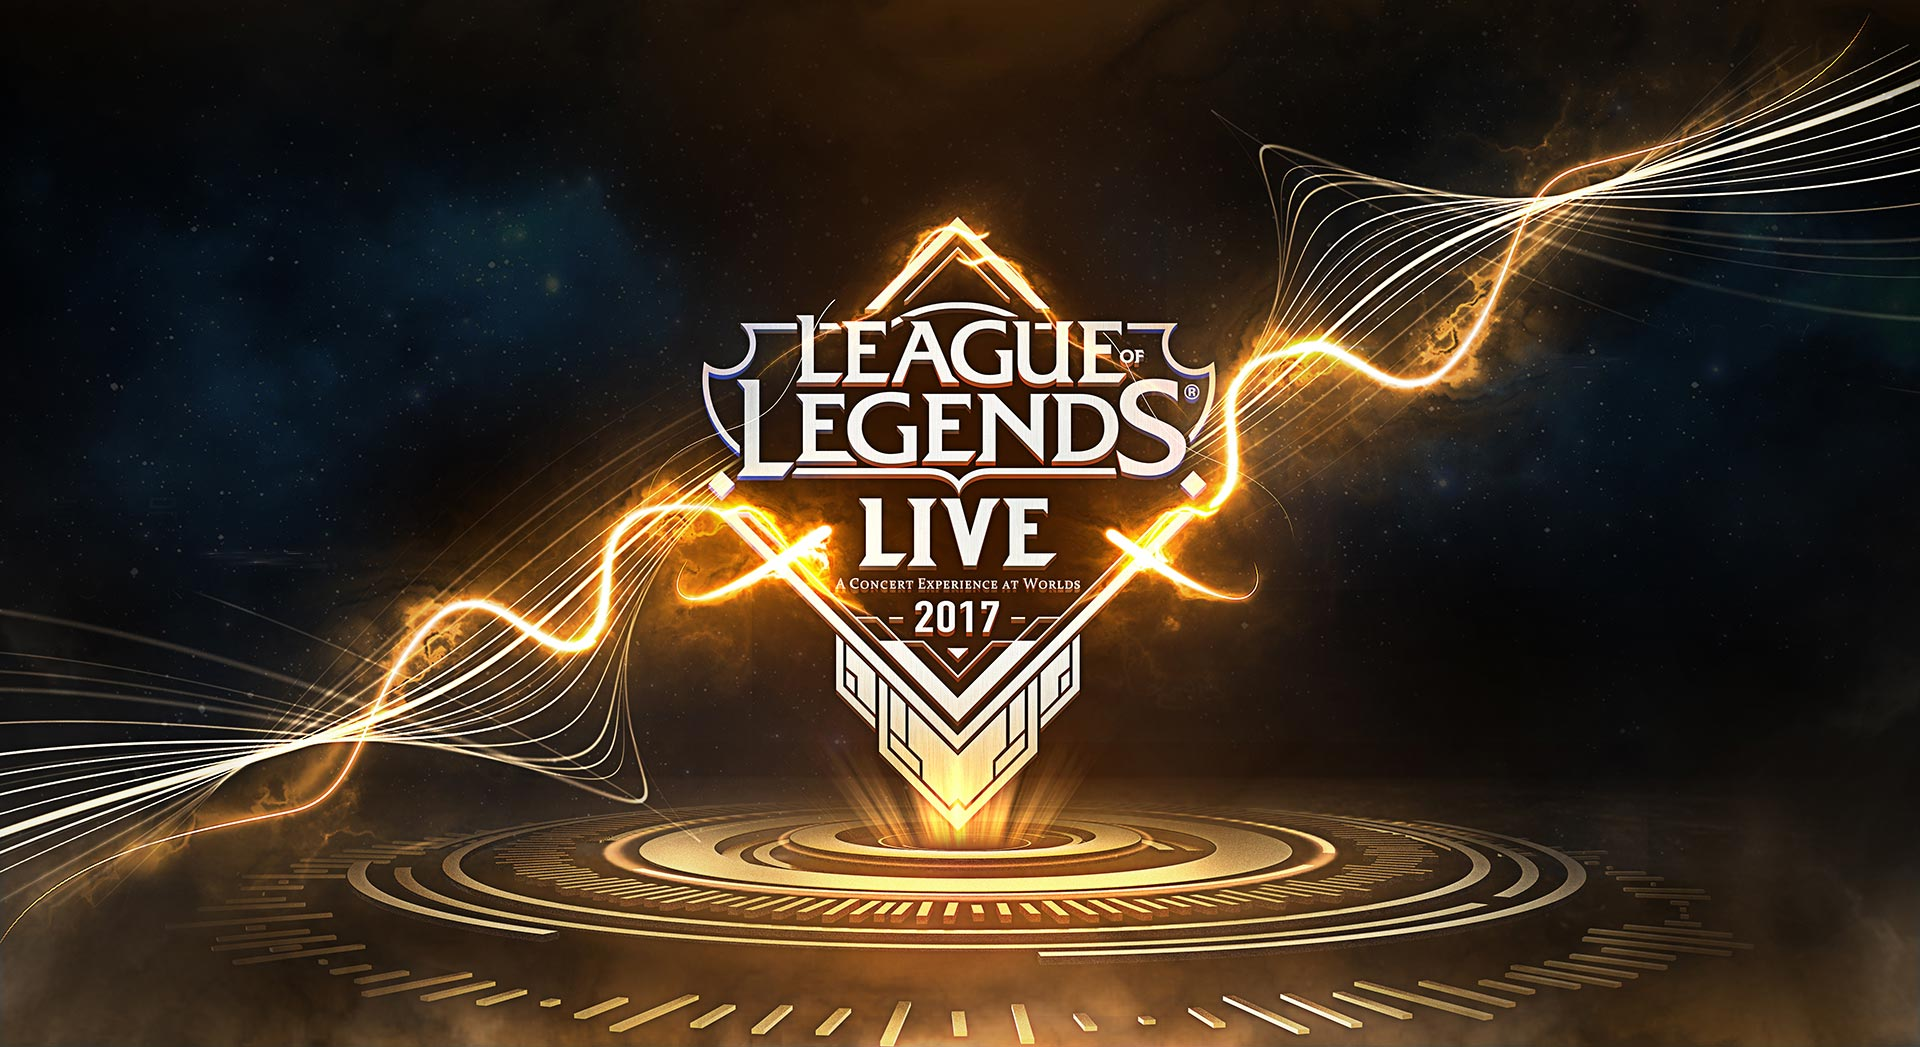 League of Legends Live | League of Legends